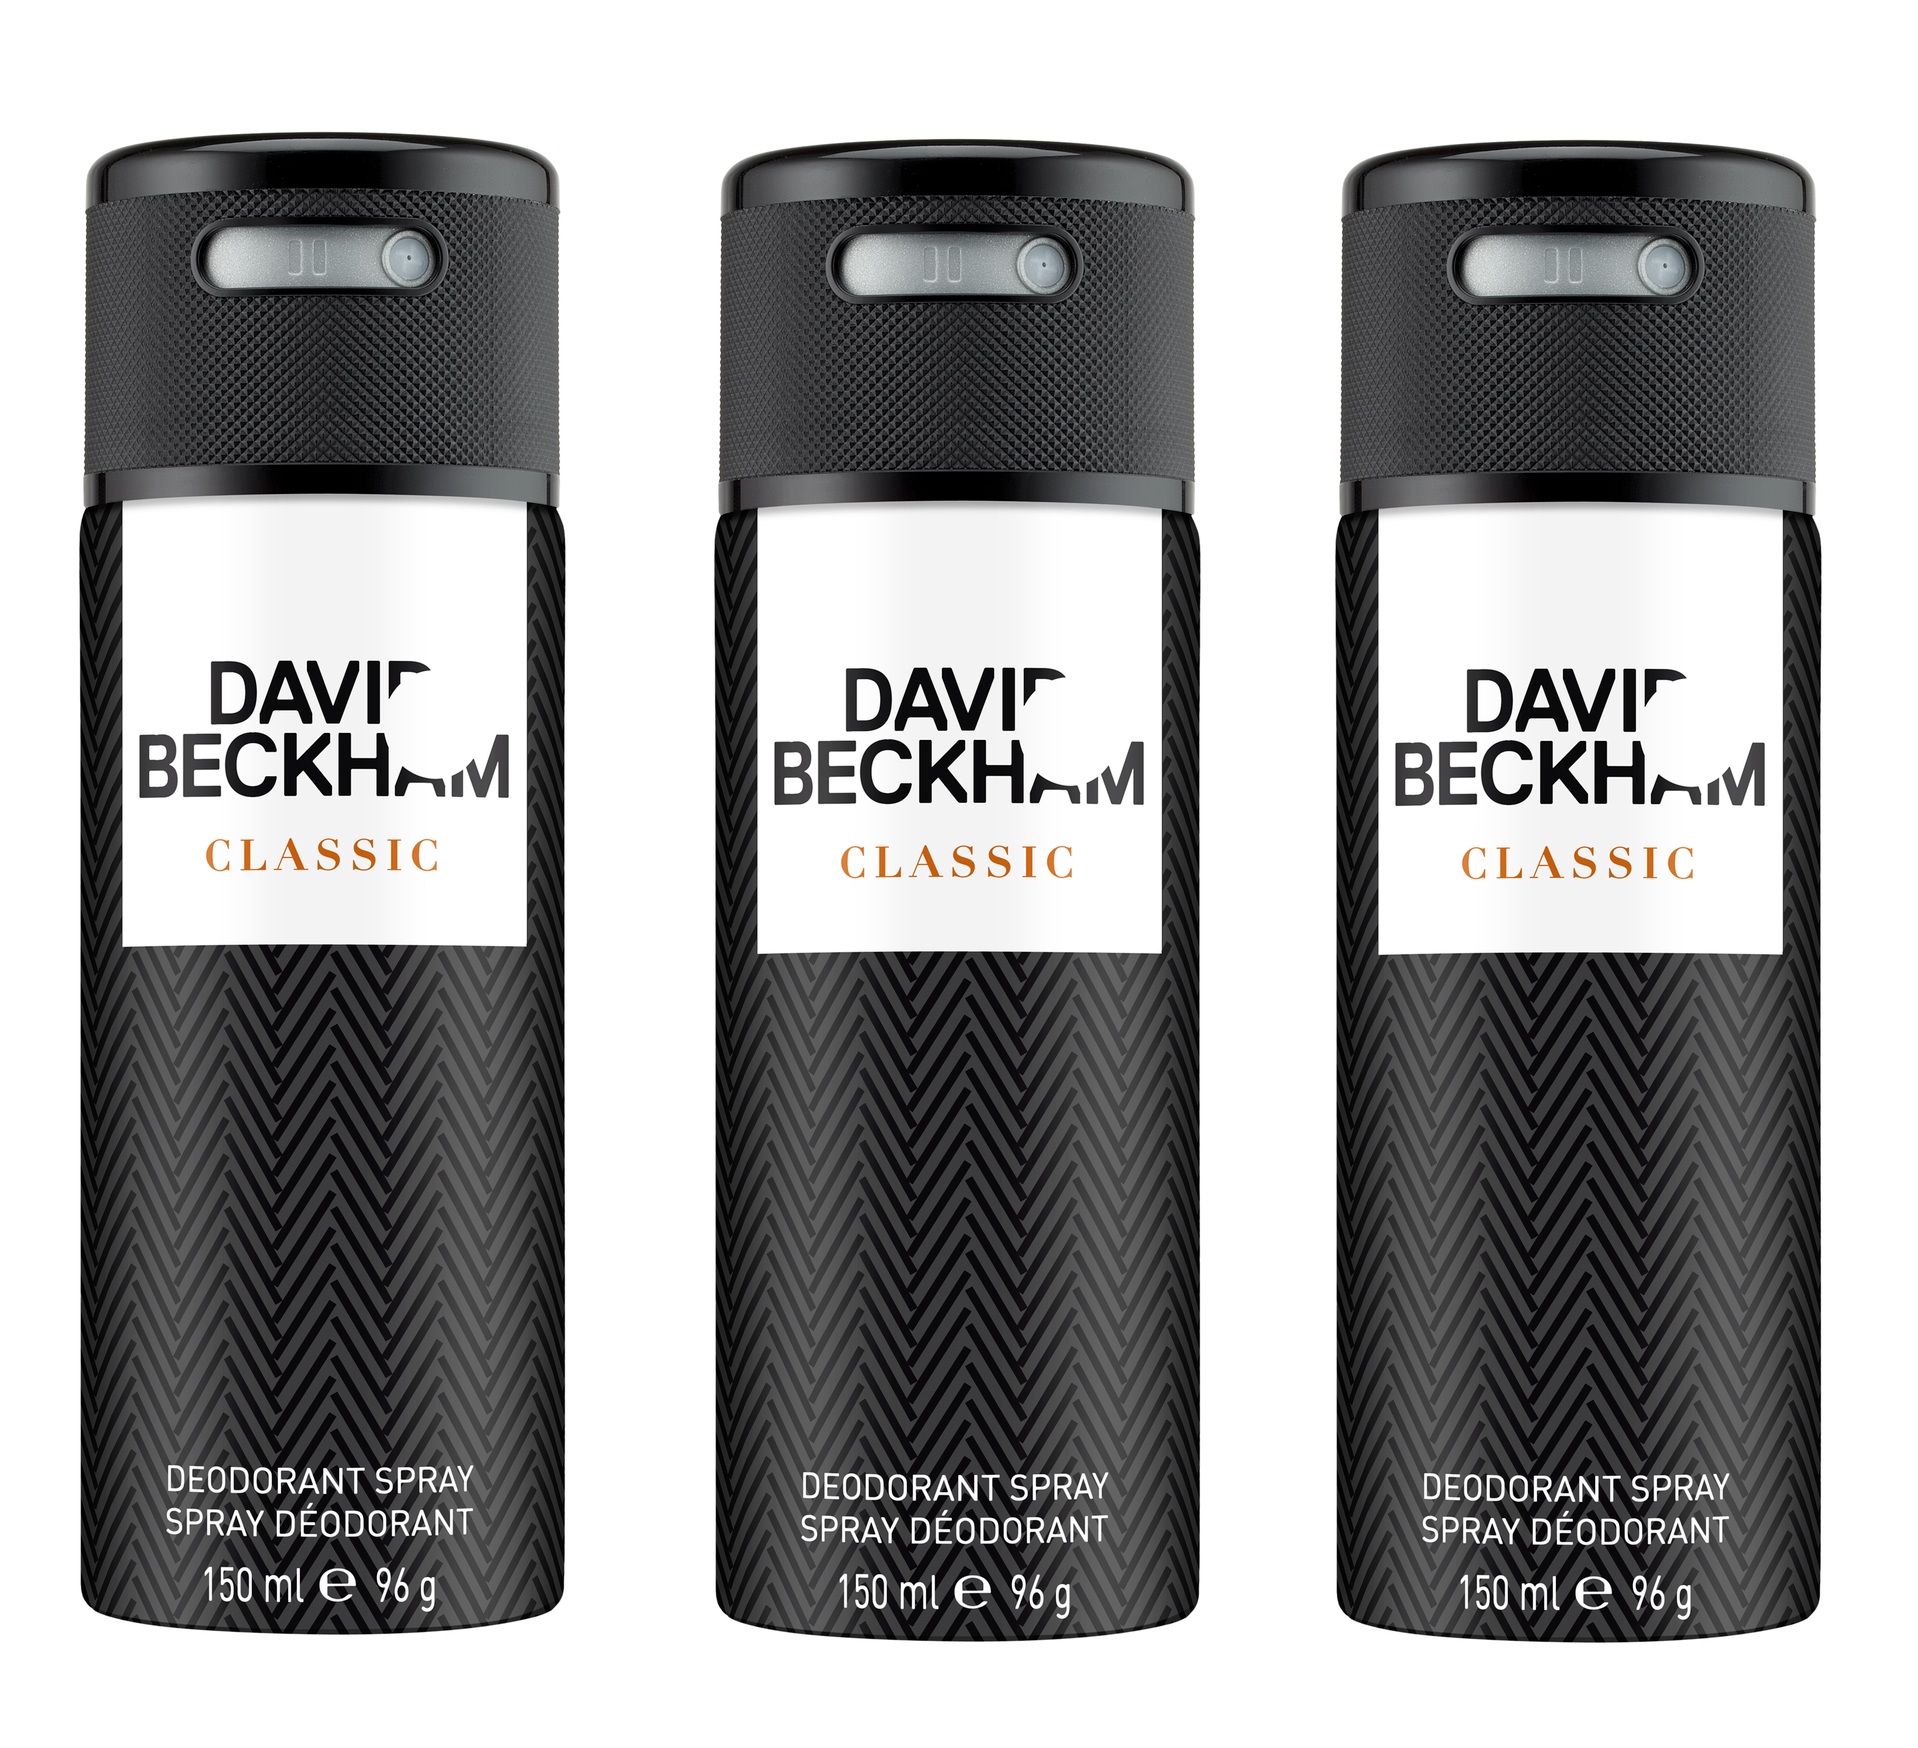 David Beckham - 3x Classic Deodorant Spray 150 ml